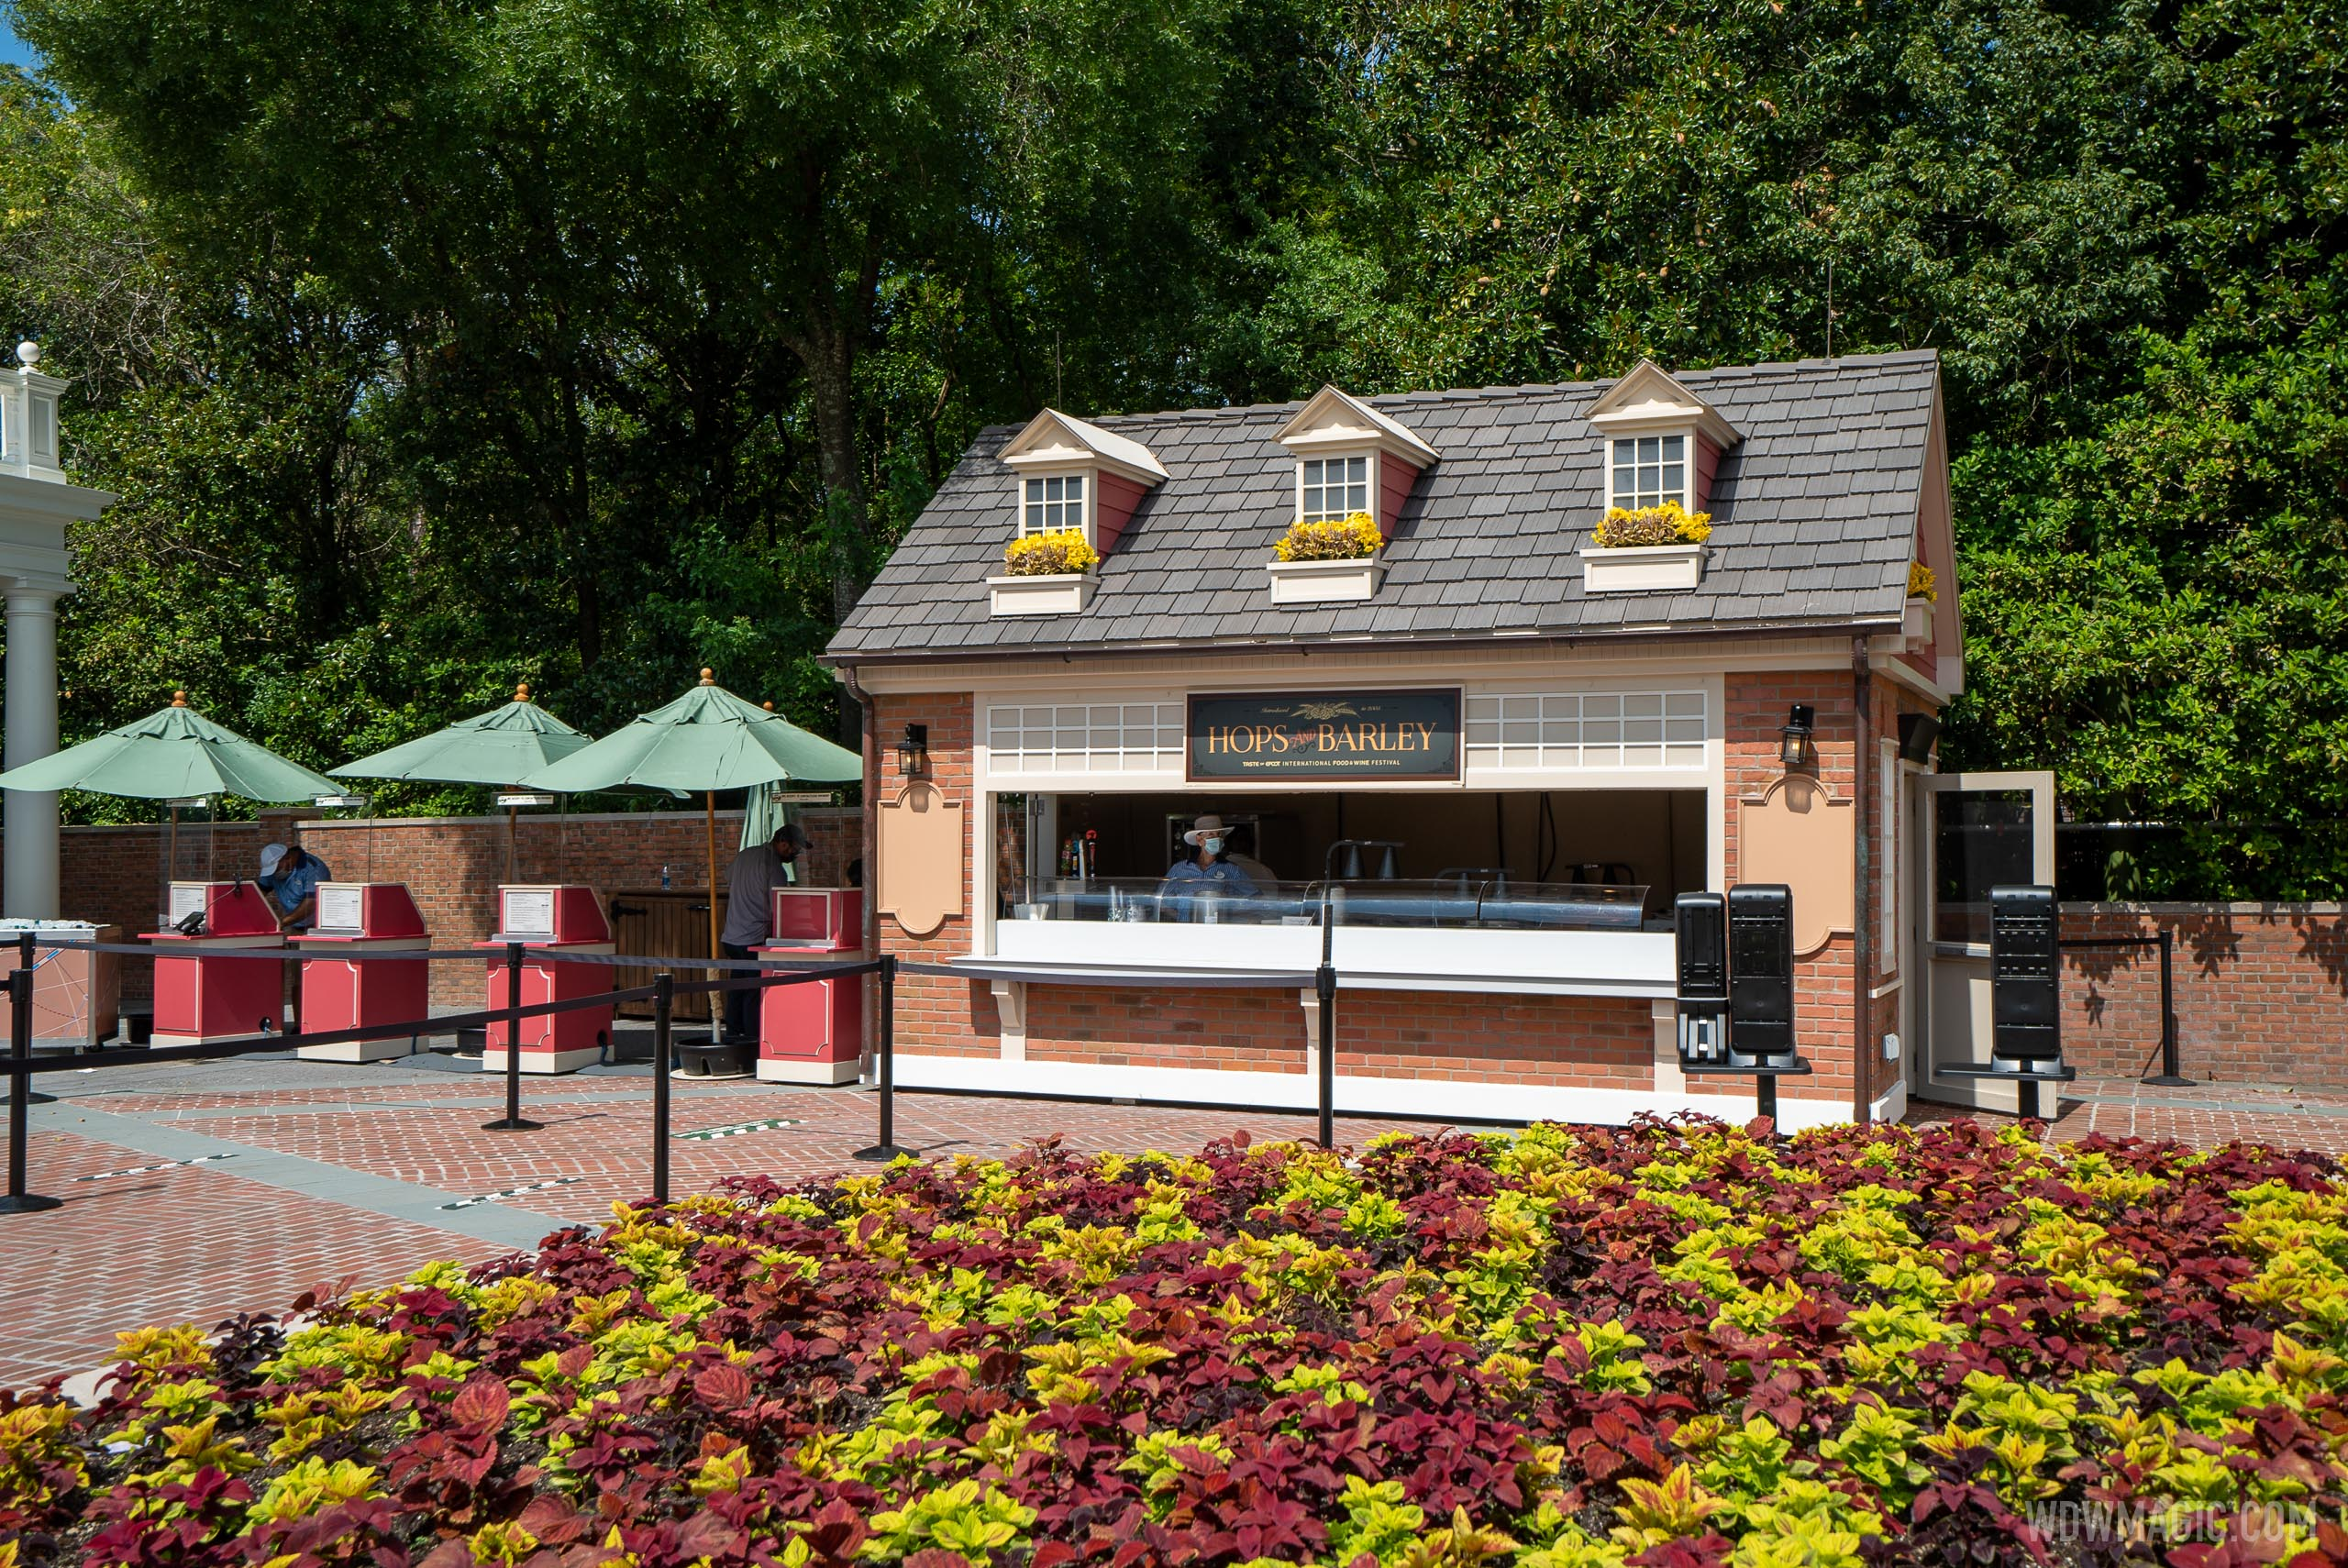 Taste of EPCOT Food and Wine Festival - Hops and Barley kiosk